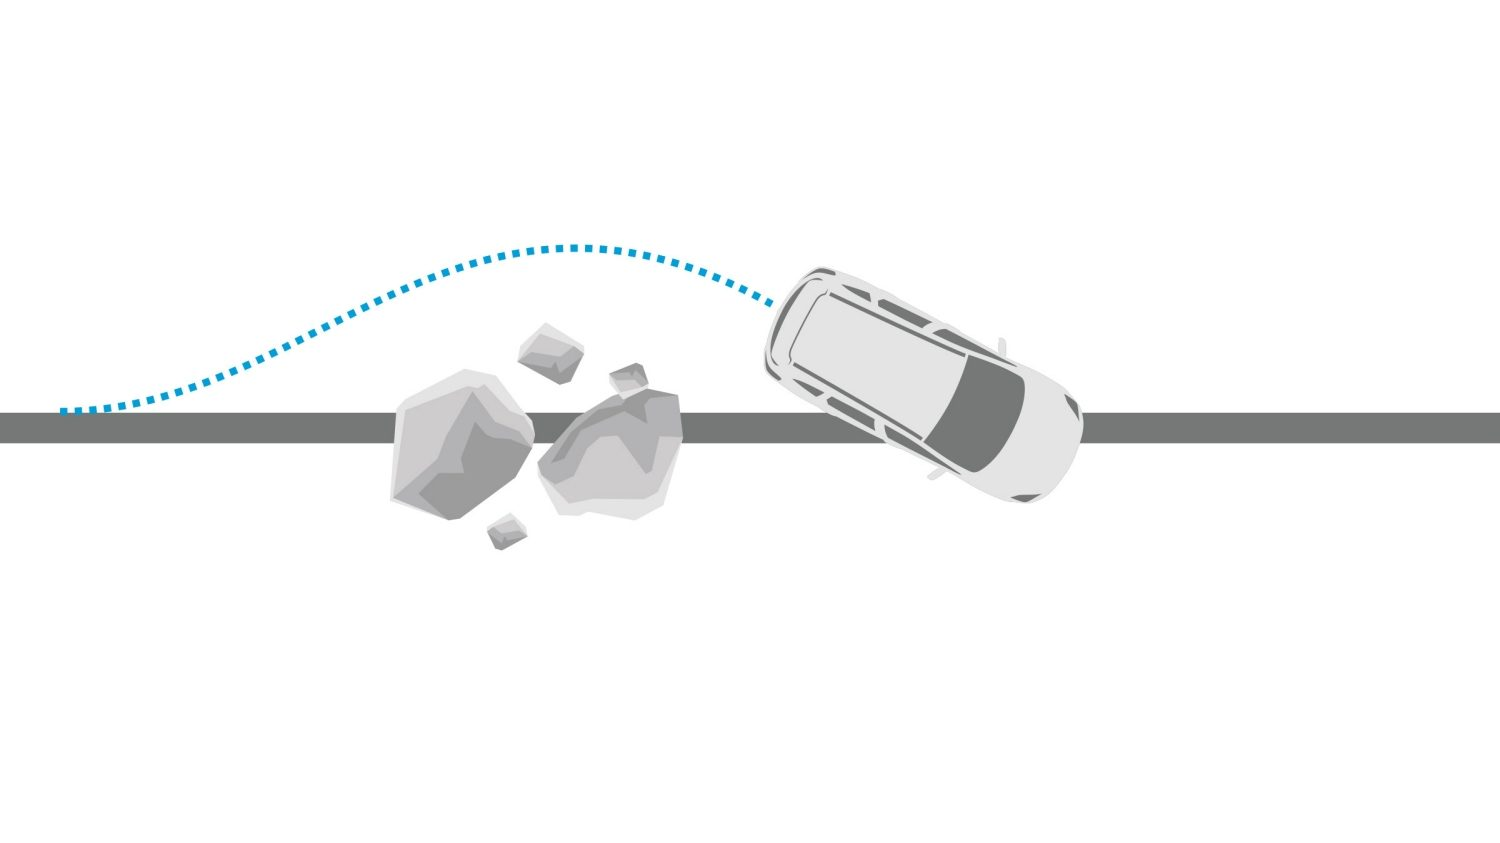 Vehicle Dynamic Control Illustration